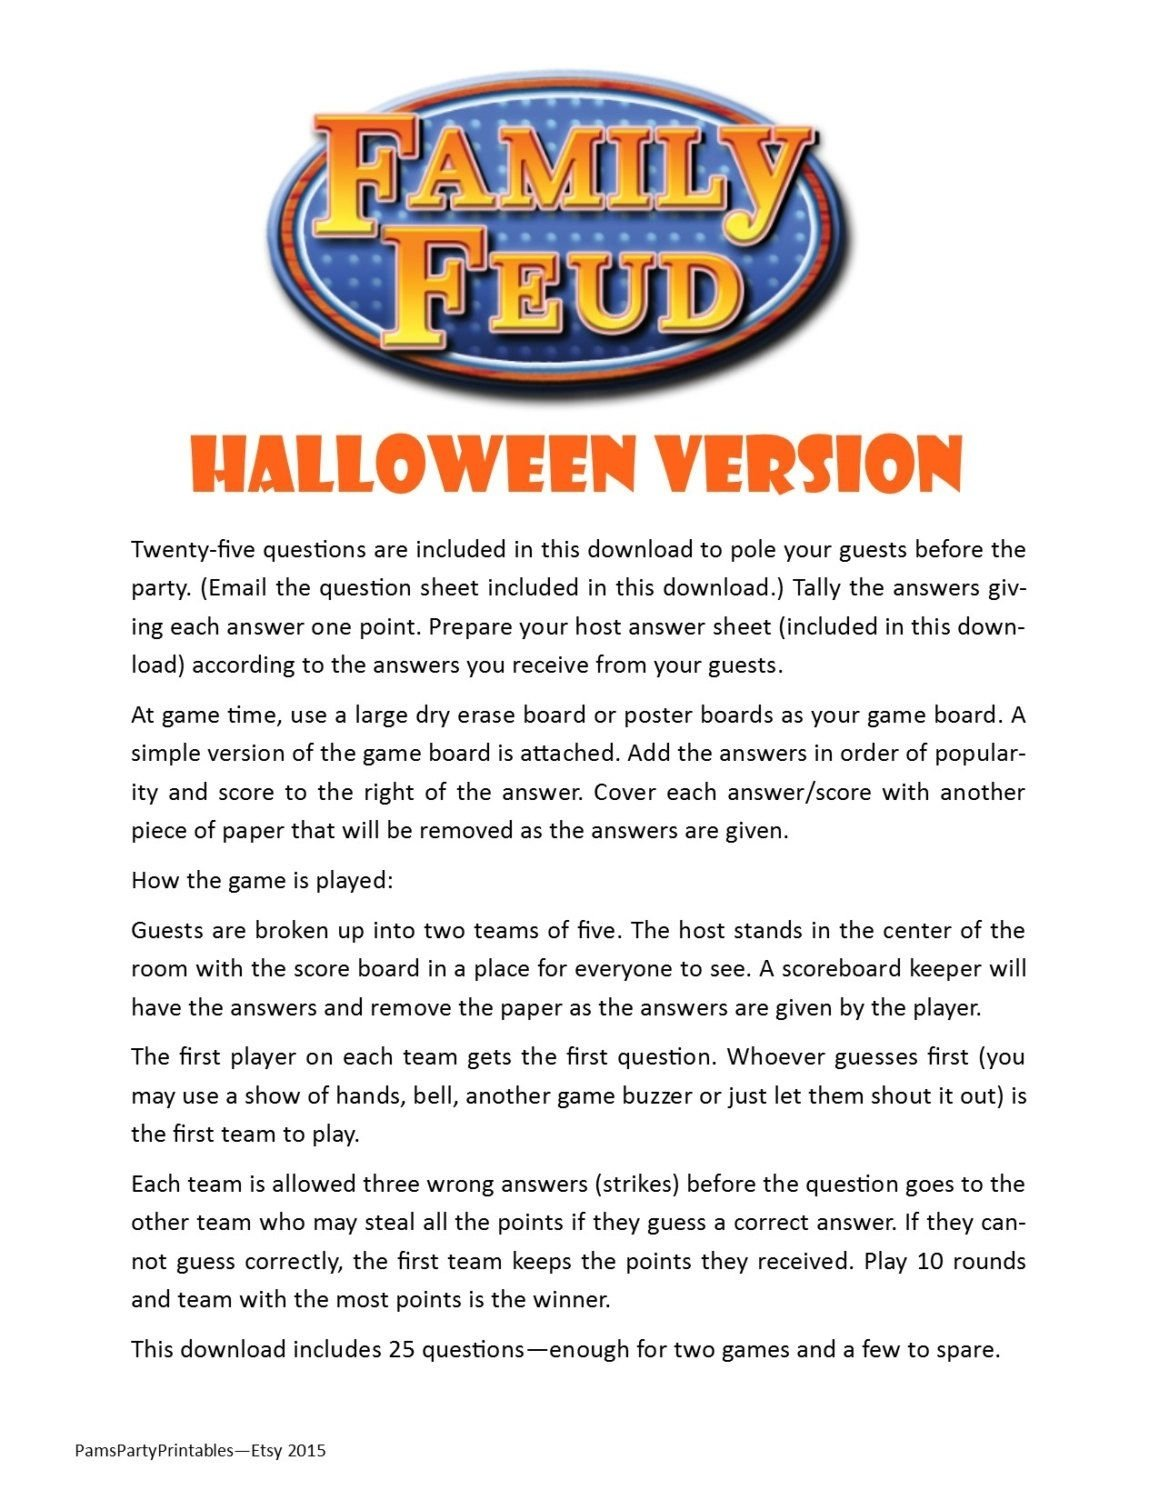 10 Best Youth Group Christmas Party Ideas halloween family feud printable game halloween party game 2021